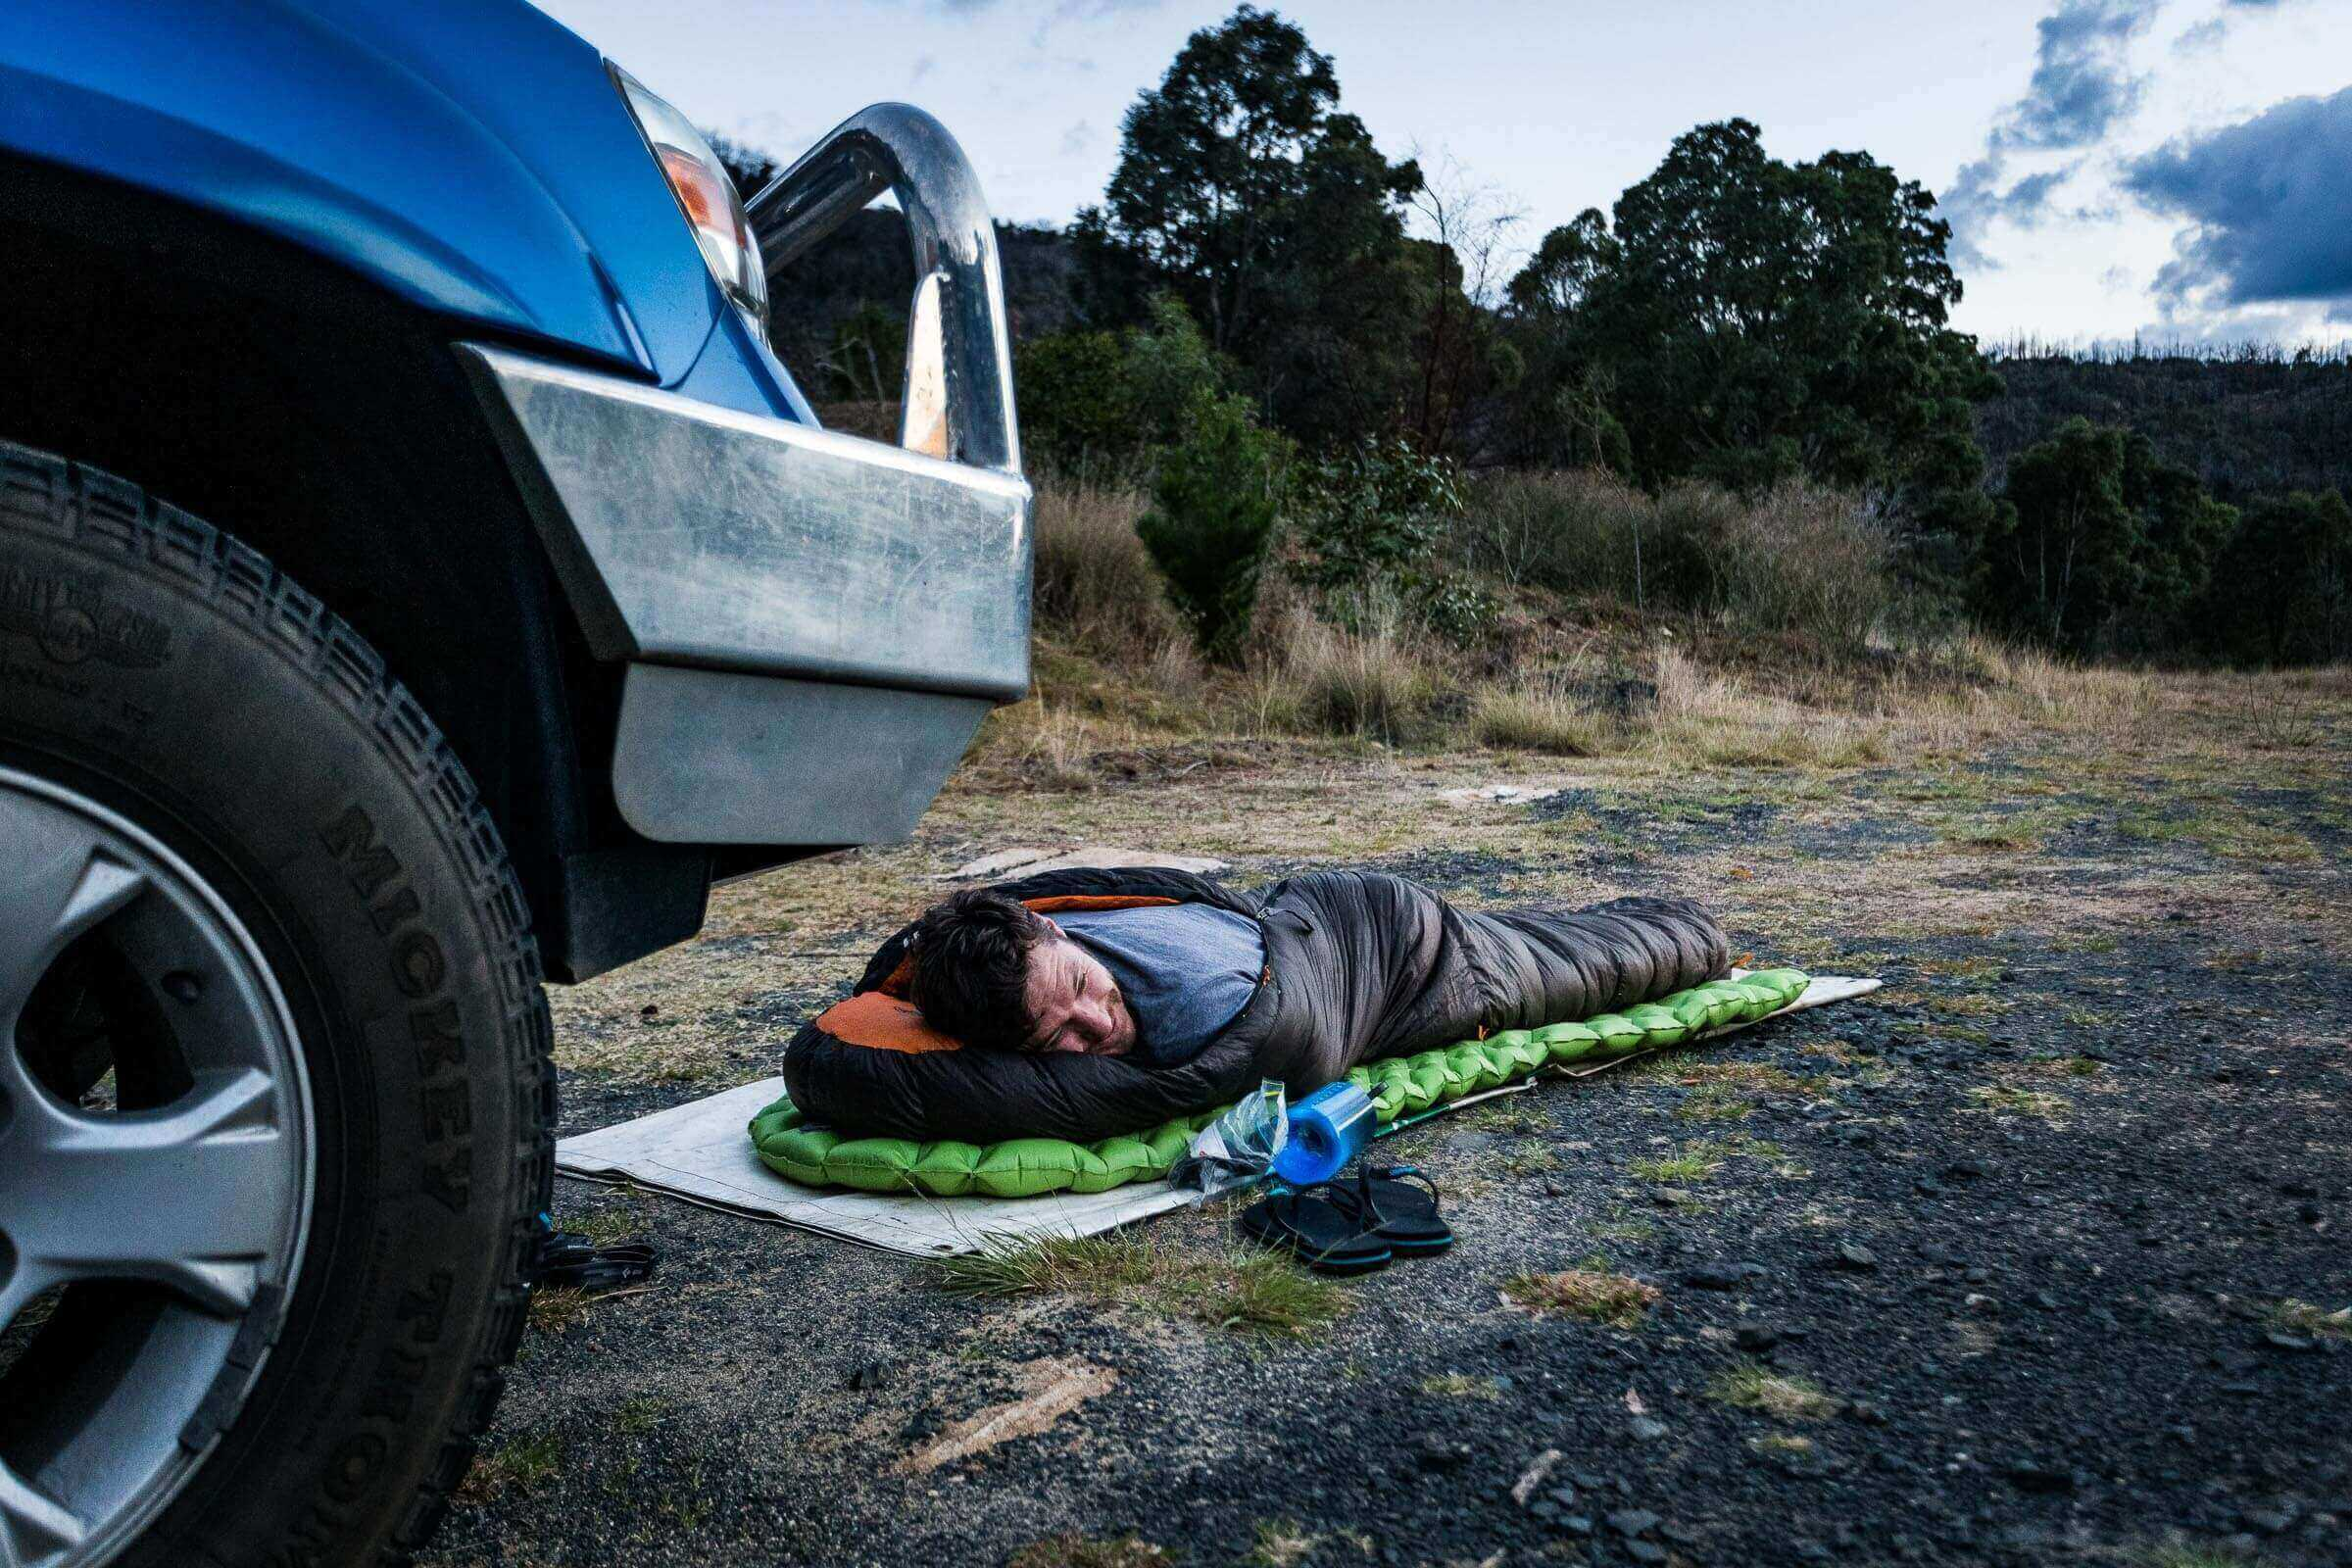 The not-so-glamorous side of adventure: Dave Stone sleeping beside the road on the way to a rock climbing destination